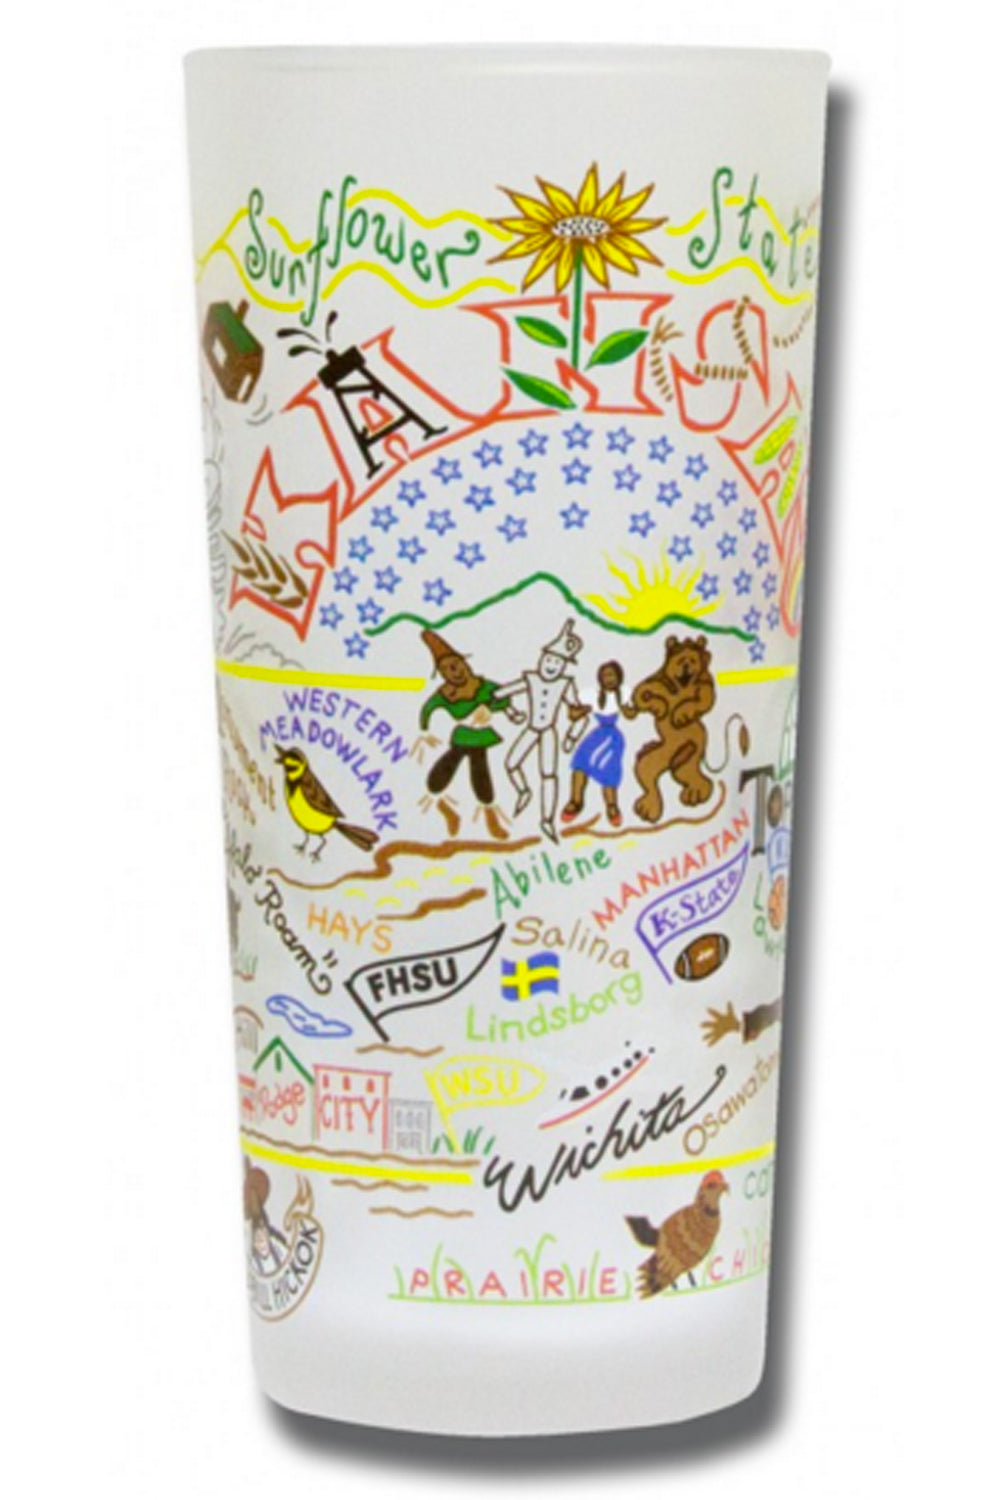 CS Frosted Glass Tumbler Cup - Kansas